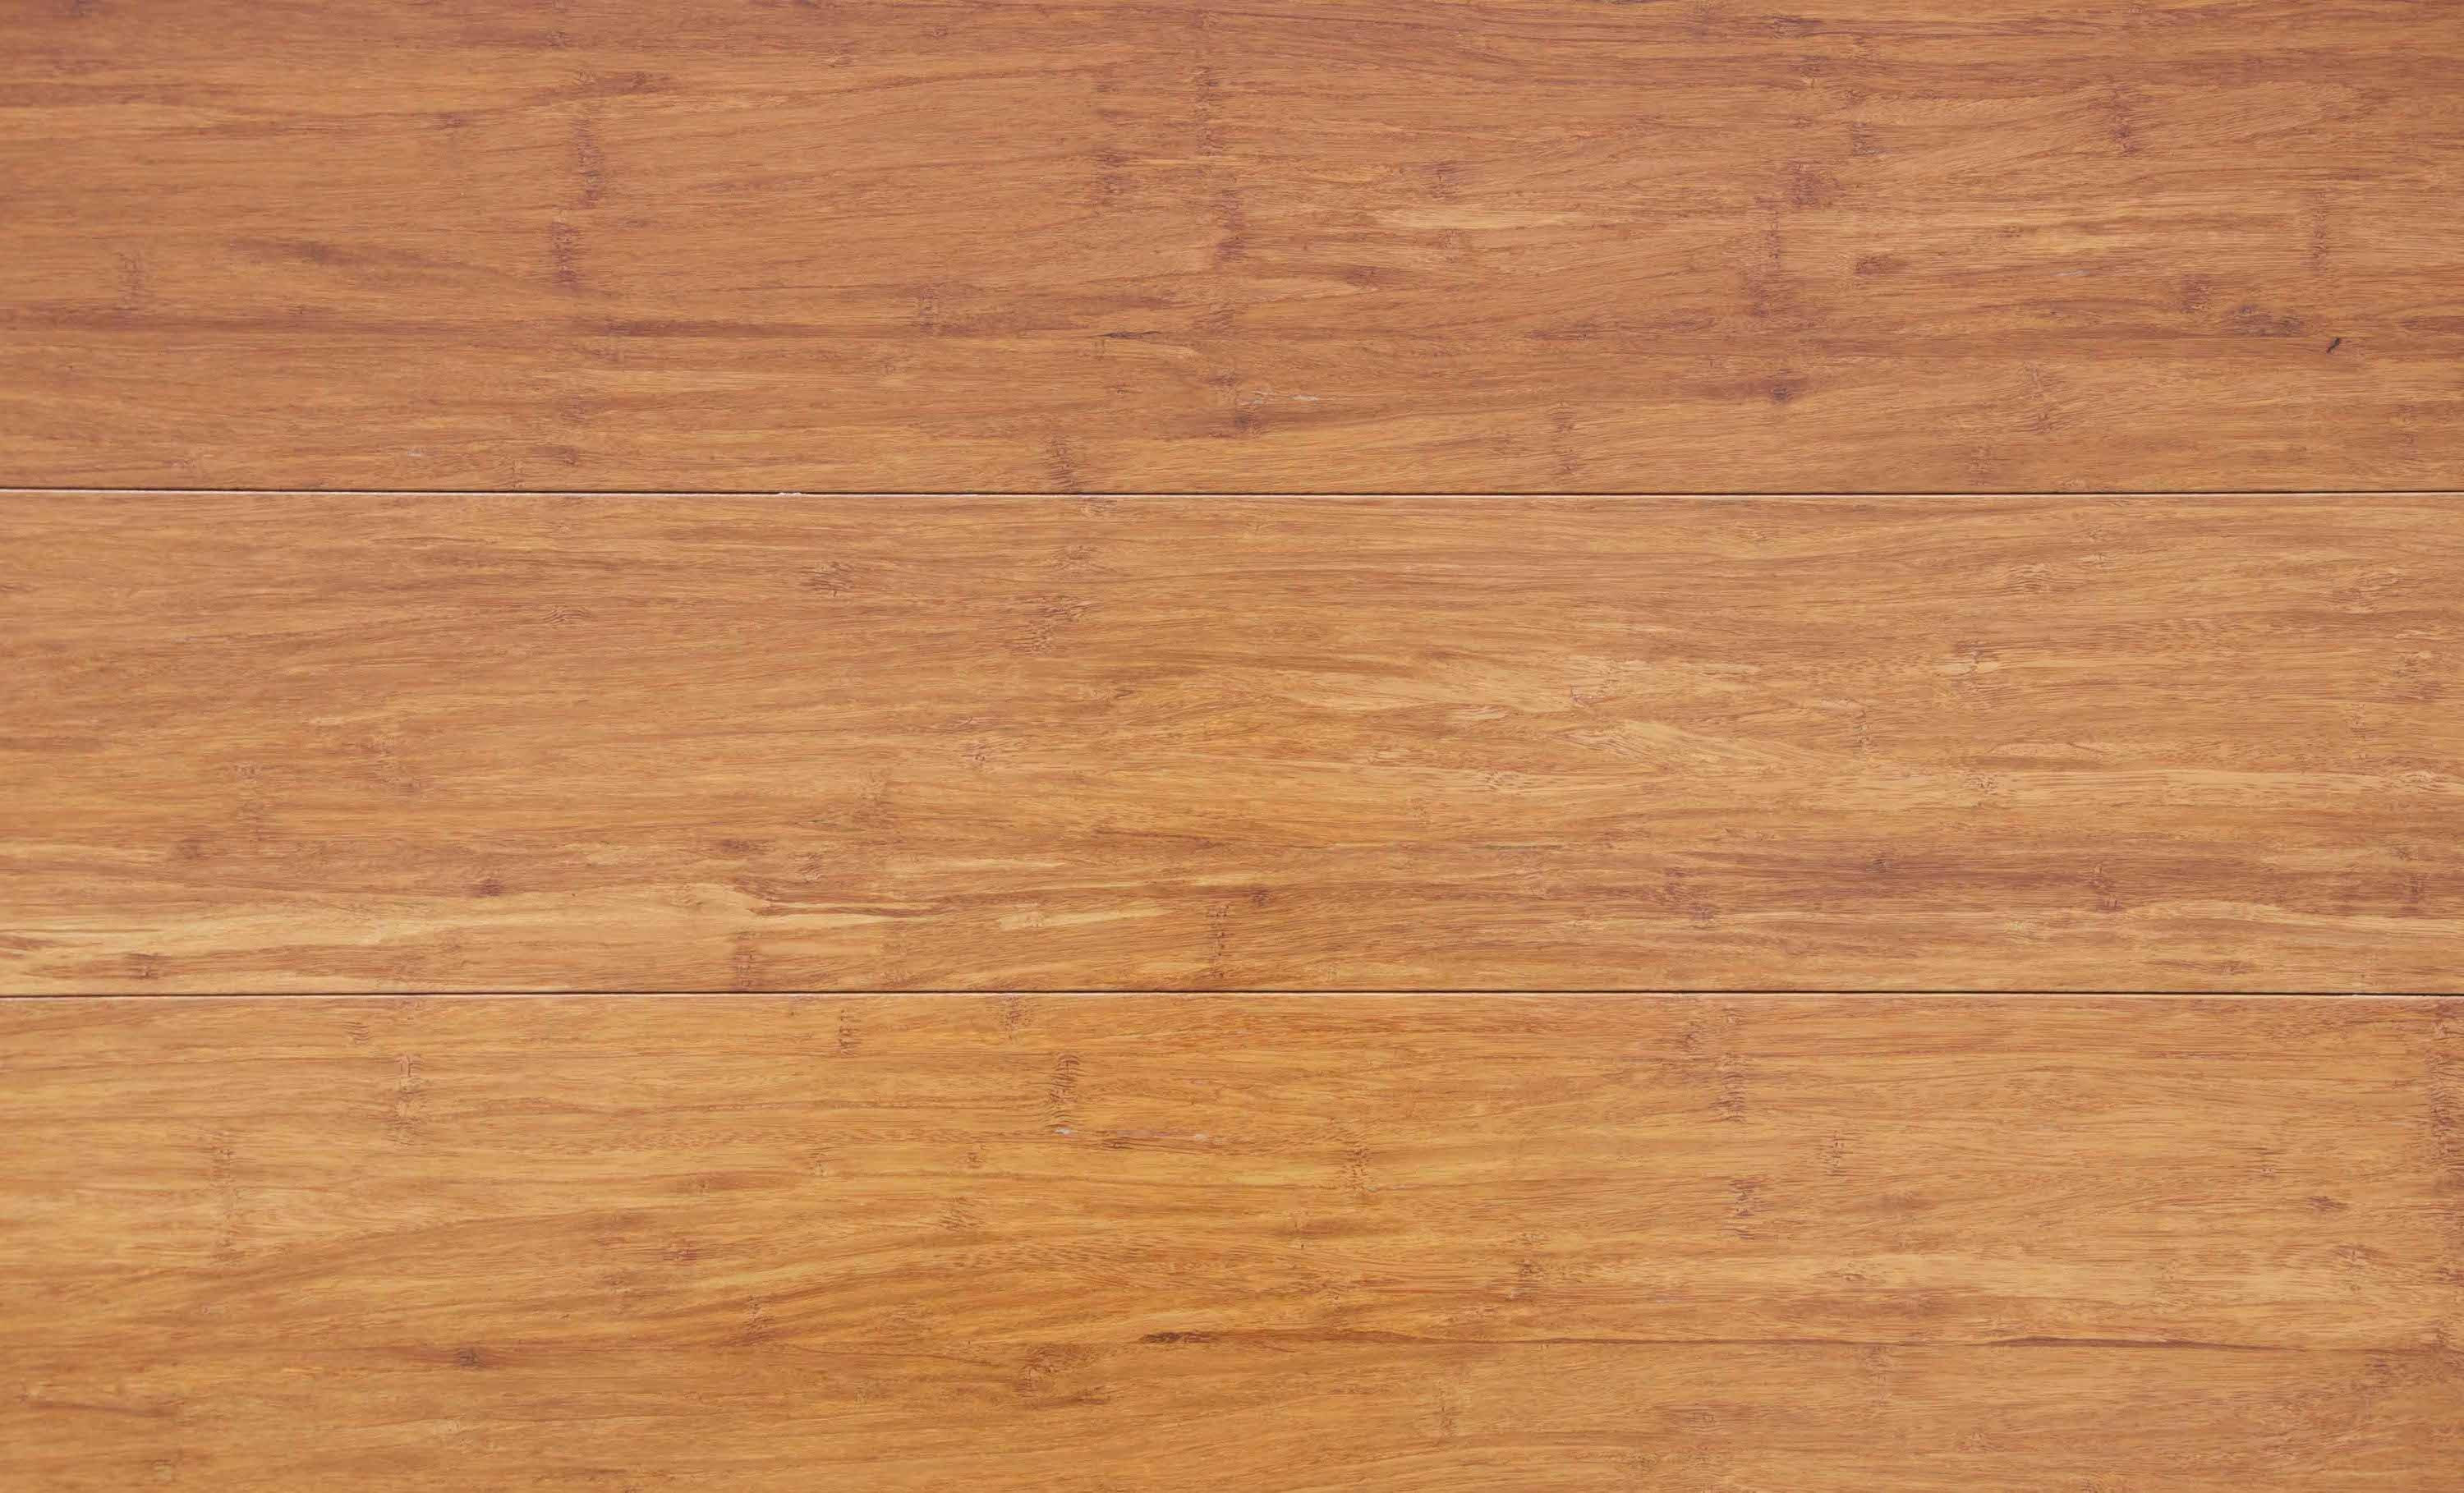 How to Clean Vinyl Hardwood Floors Of 37 Best Unfinished Bamboo Floor Stock Flooring Design Ideas within Bamboo Laminate Flooring Rhino Style Moyen Wood Effect Vinyl Floor